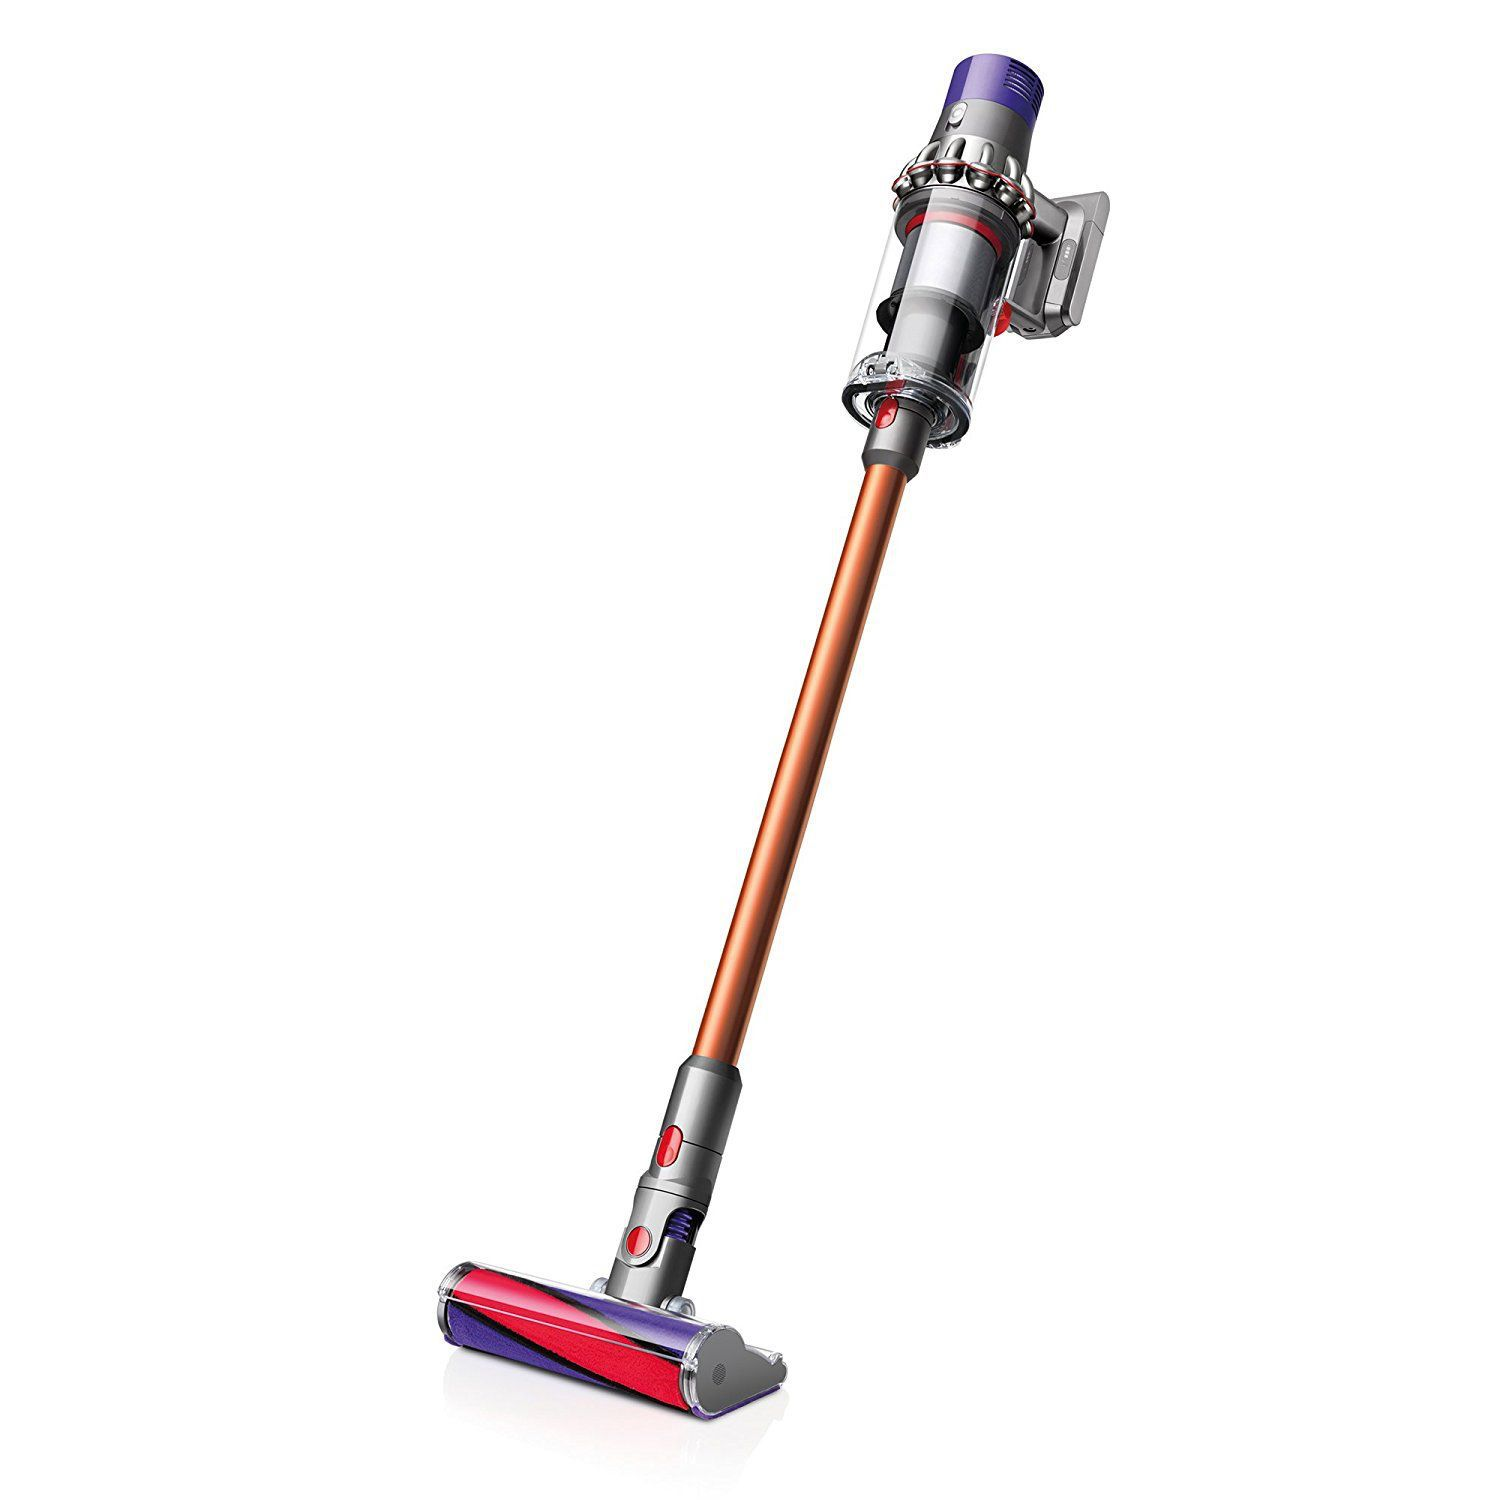 Dyson Cyclone V10 Absolute​ Cordless Vacuum